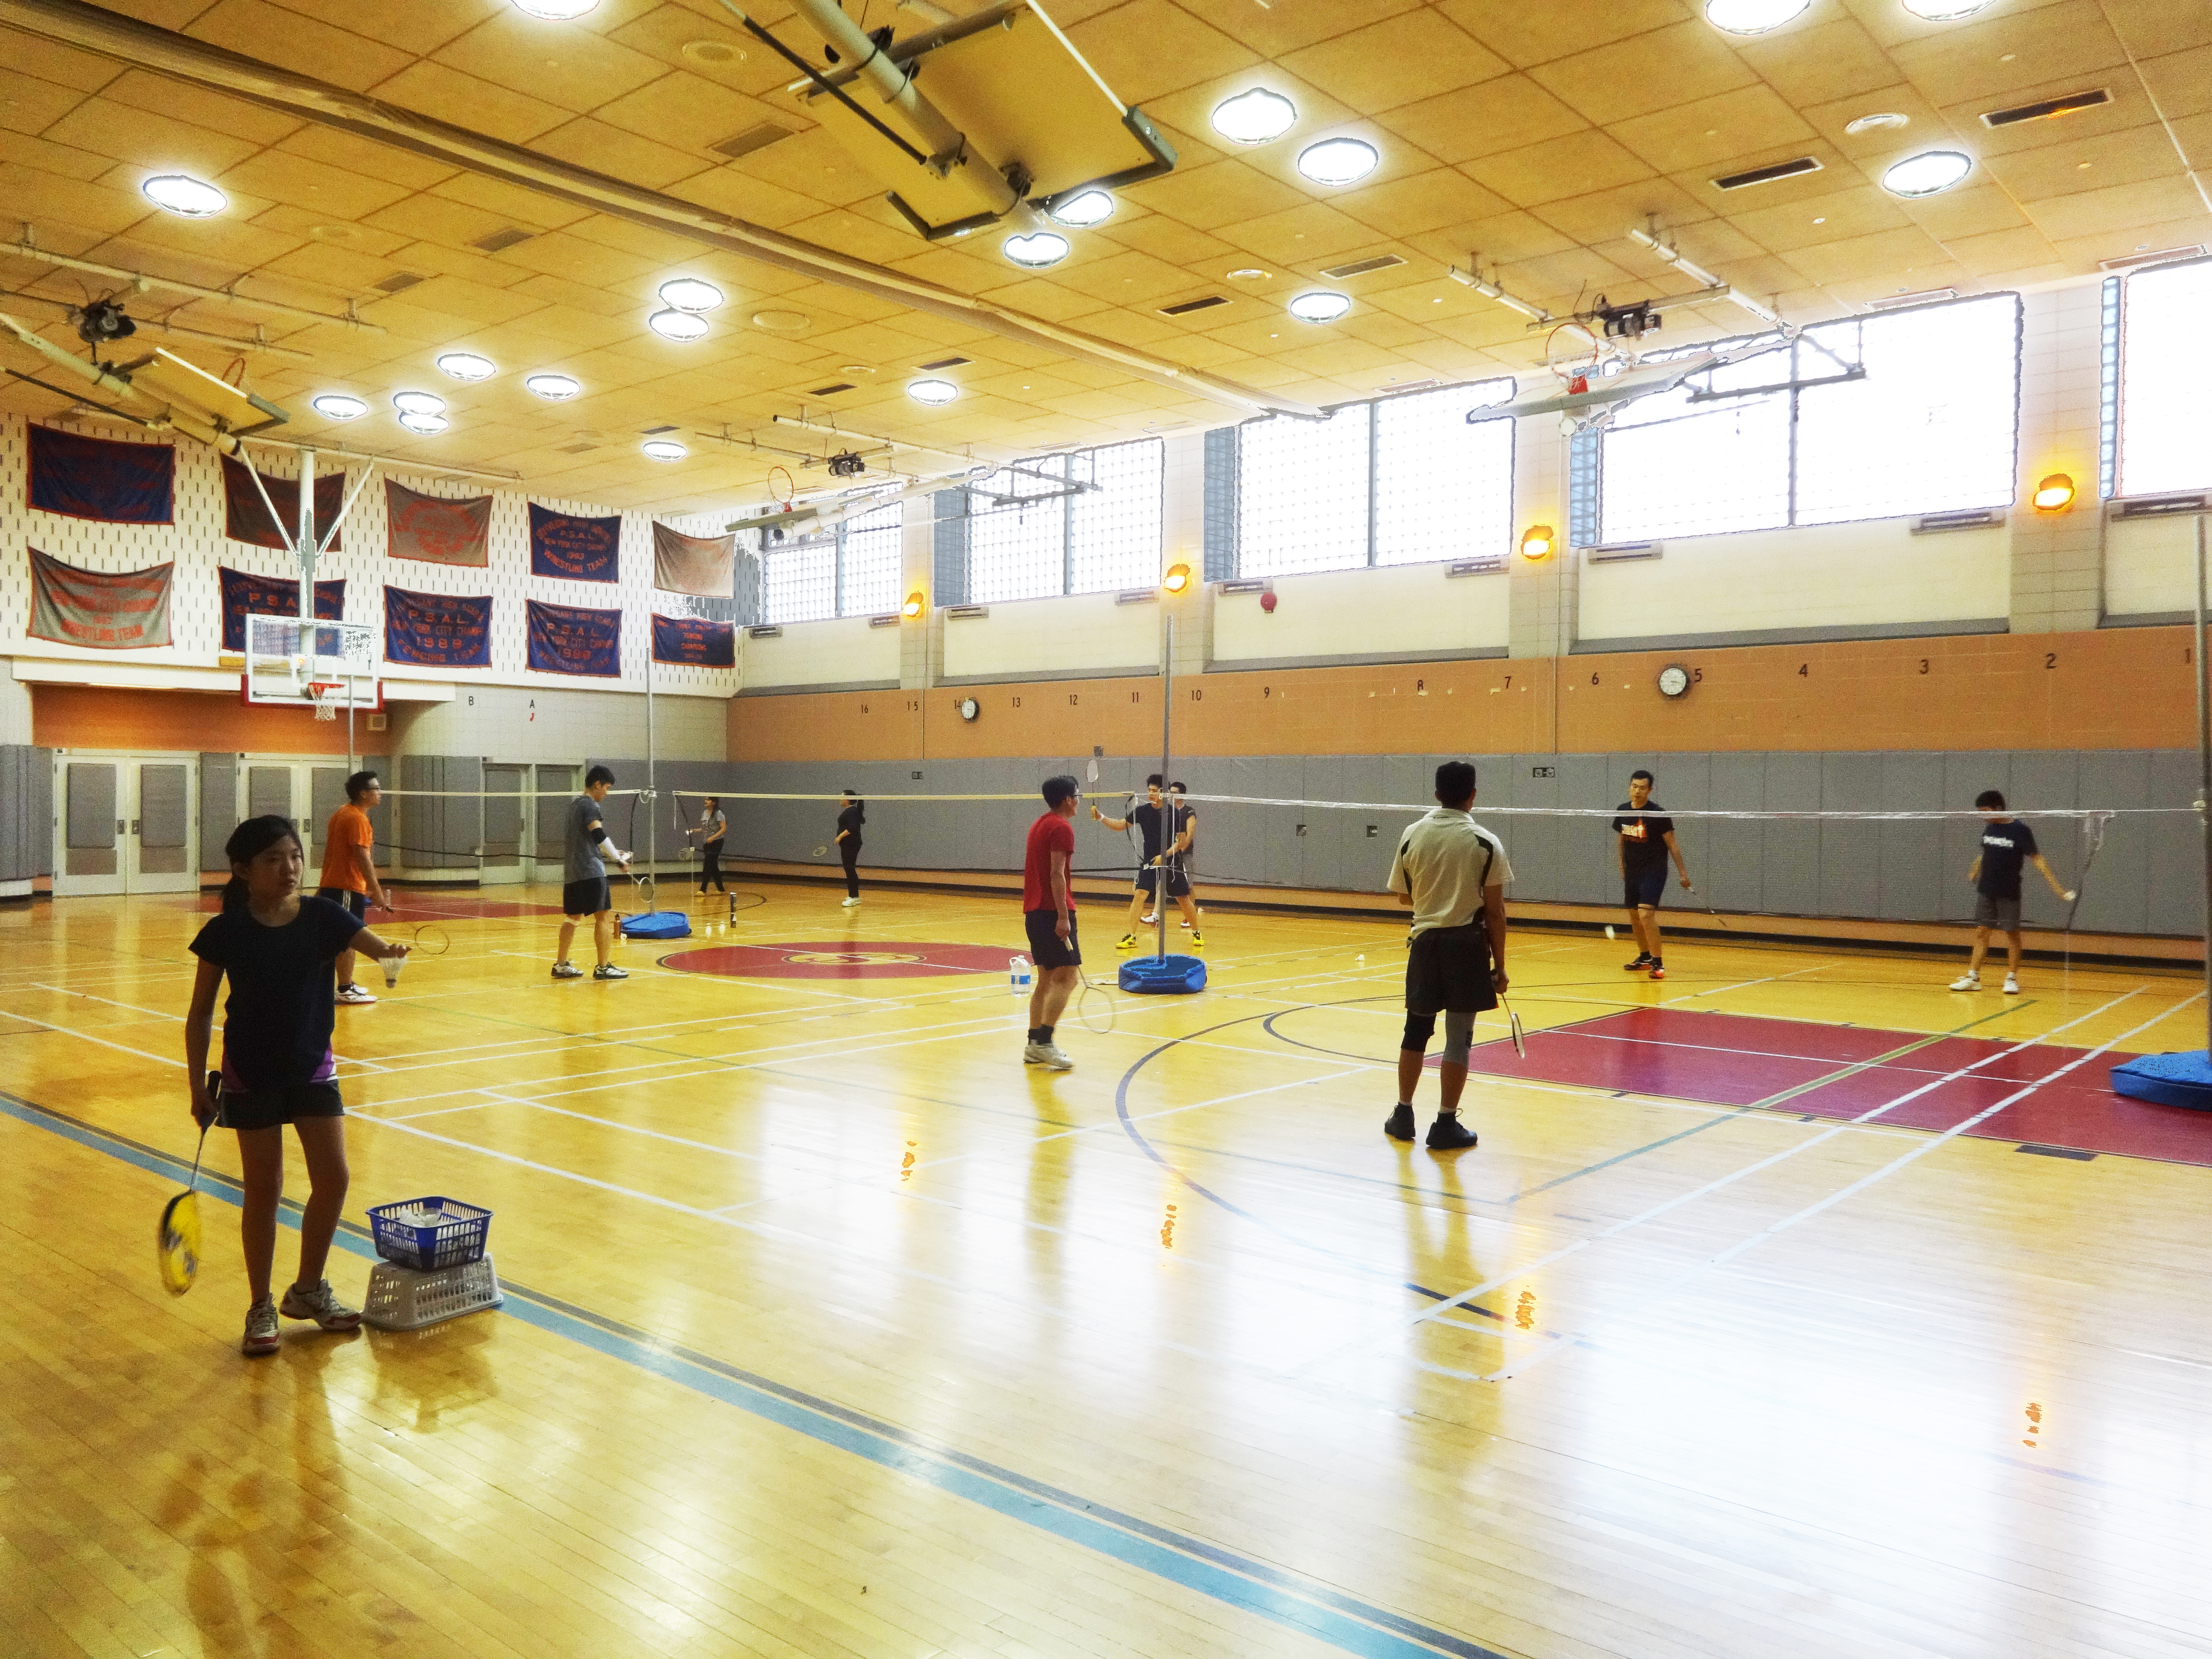 Stuyvesant S Pool And Two Basketball Courts Cost A